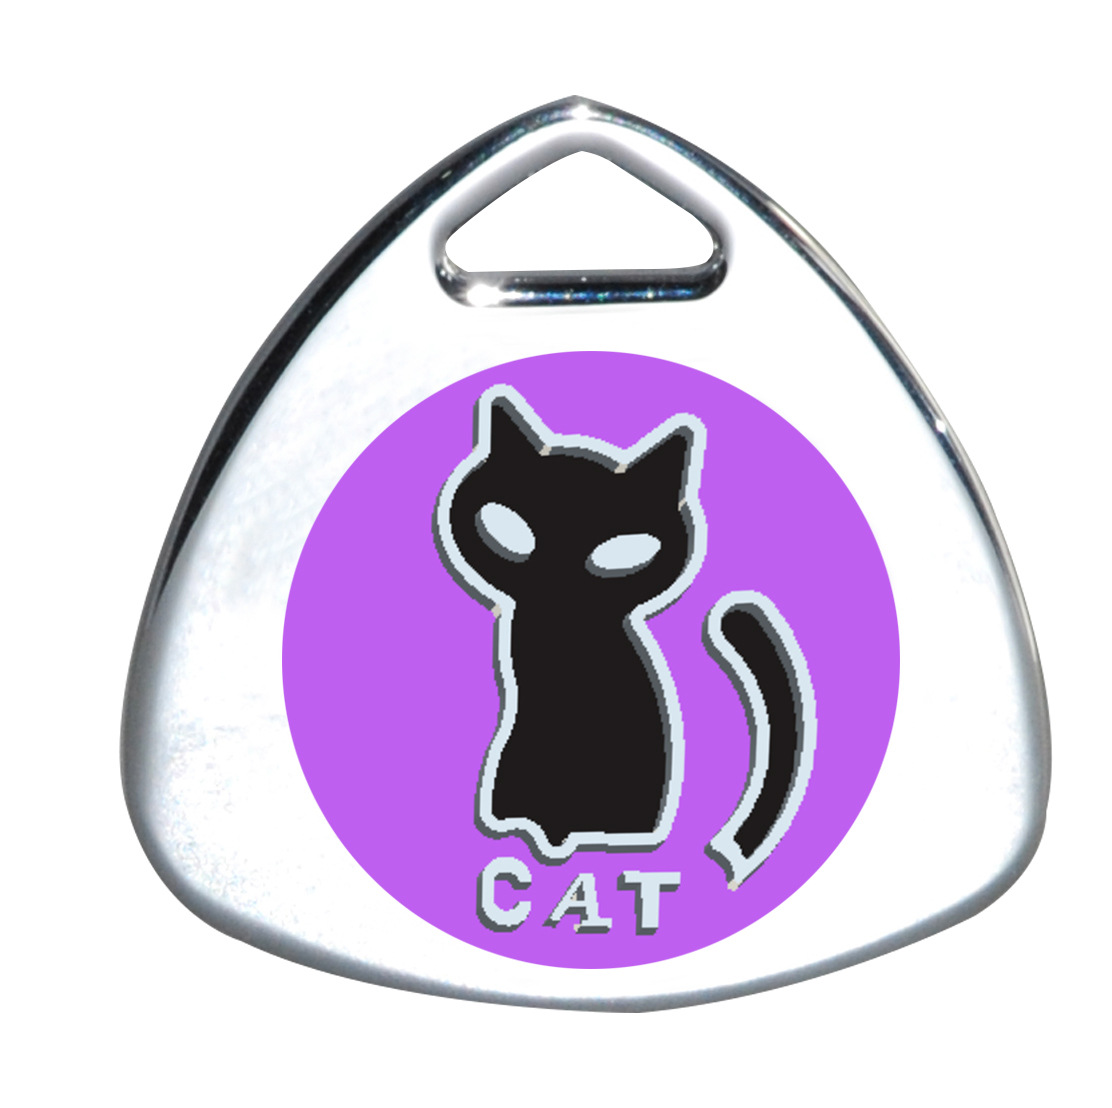 Cat Tag Personalized Engraved Dog ID Tags Pet Collar Pendant For Kitten Puppy Pet Toys